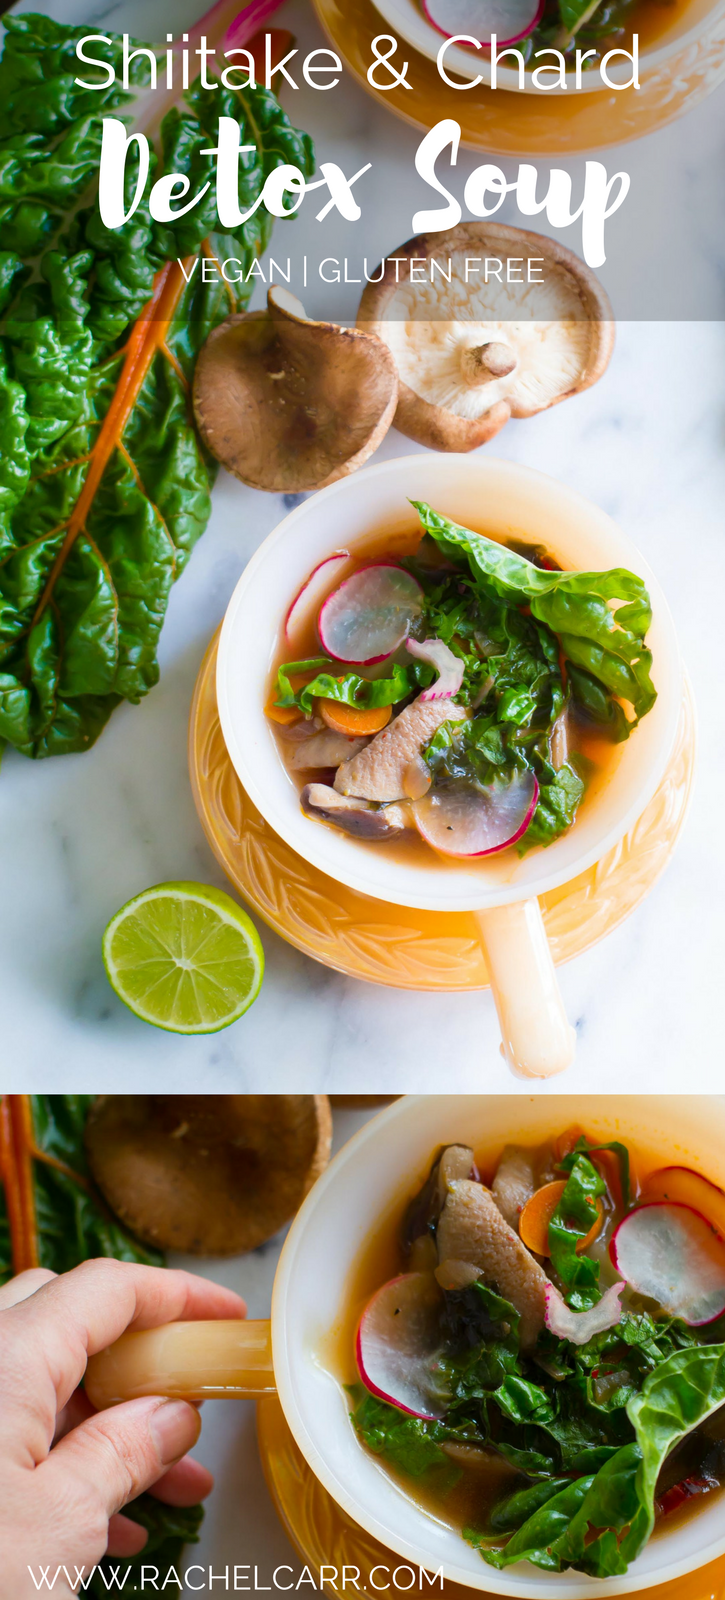 This Detox Soup is a great tonic in the winter months-it's chockful of healthy ingredients that will ground you, boost your immune system and supply you with an infusion of minerals and vitamins from the greens and sea vegetables. Have this soup for supper with some roasted sweet potatoes and you'll have a perfectly healthy weeknight supper.